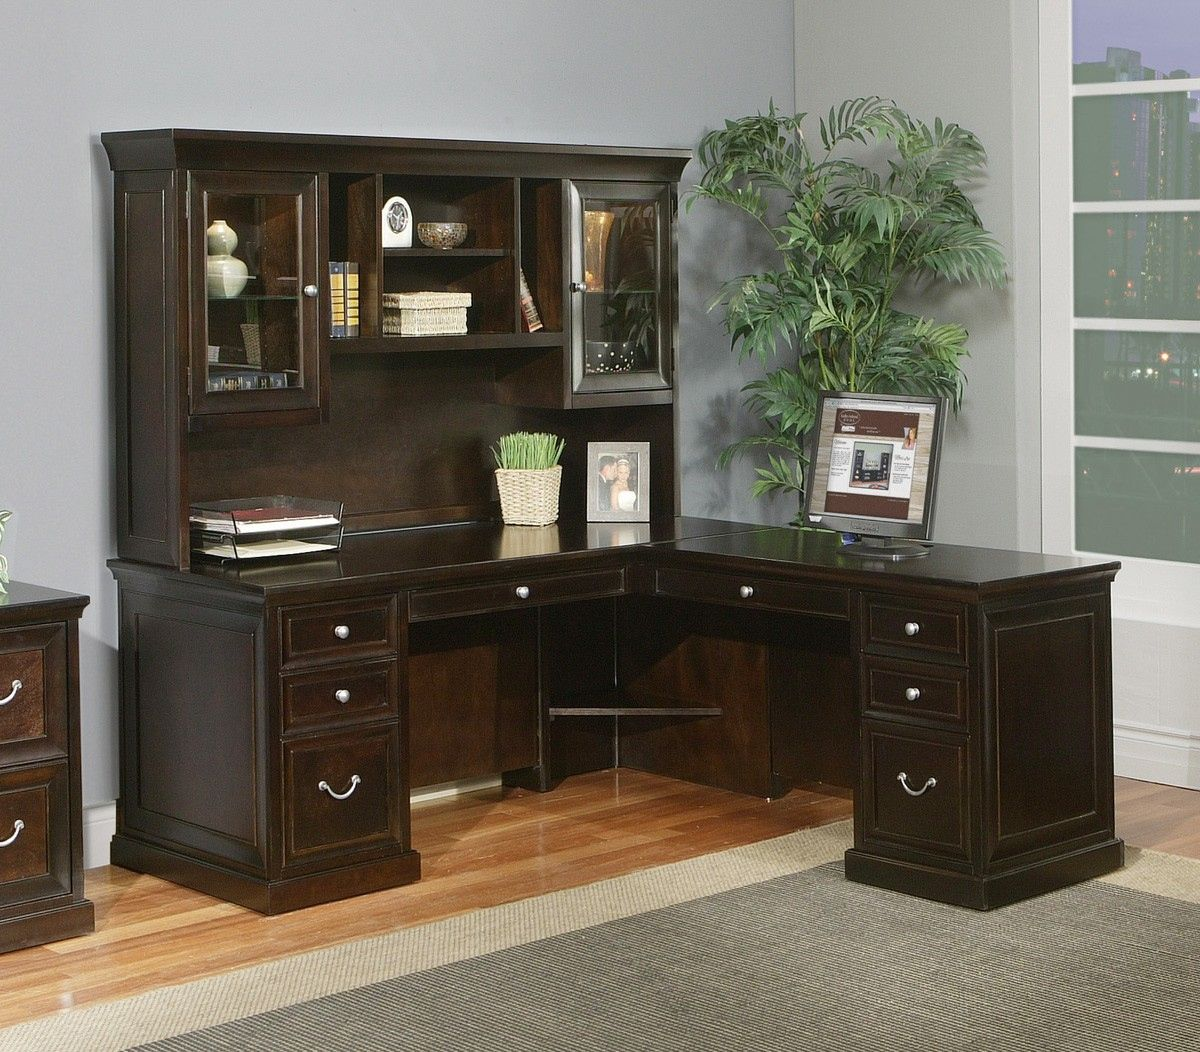 Executive L Shaped Desk With Hutch Organization Ideas For Small Check More At Http